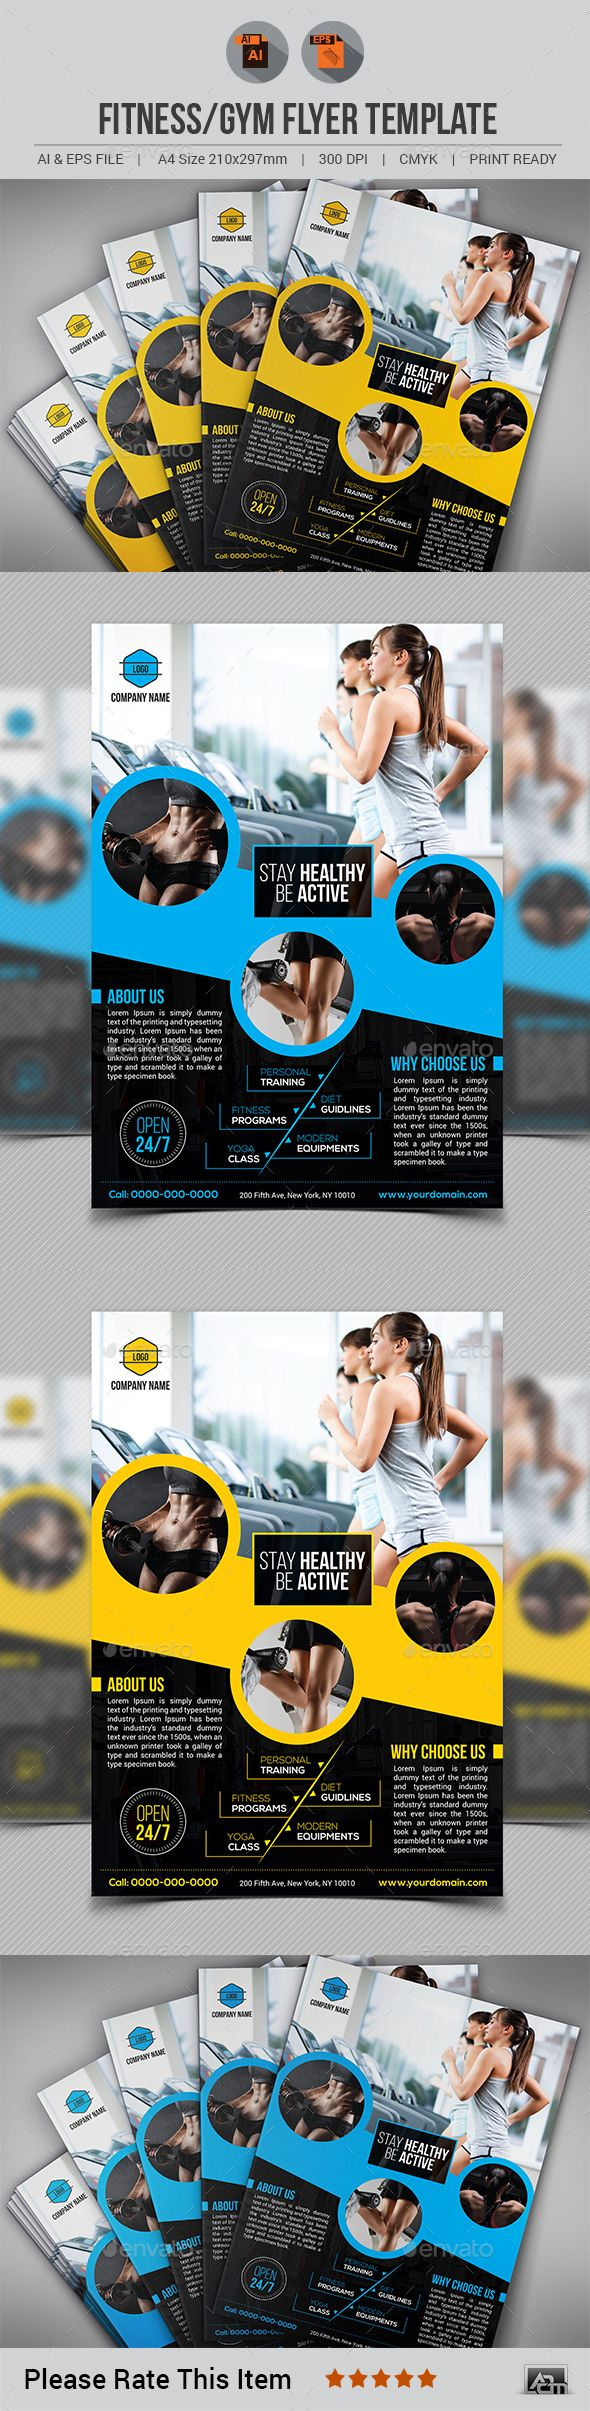 Healthcare-Advertising-Fitness-Gym-Flyer-Template-by-aam360-Similar-TemplatesINFORMATIONS-FOR-THIS-F Healthcare Advertising : Fitness / Gym Flyer Template by aam360 Similar Templates:INFORMATIONS FOR THIS F...